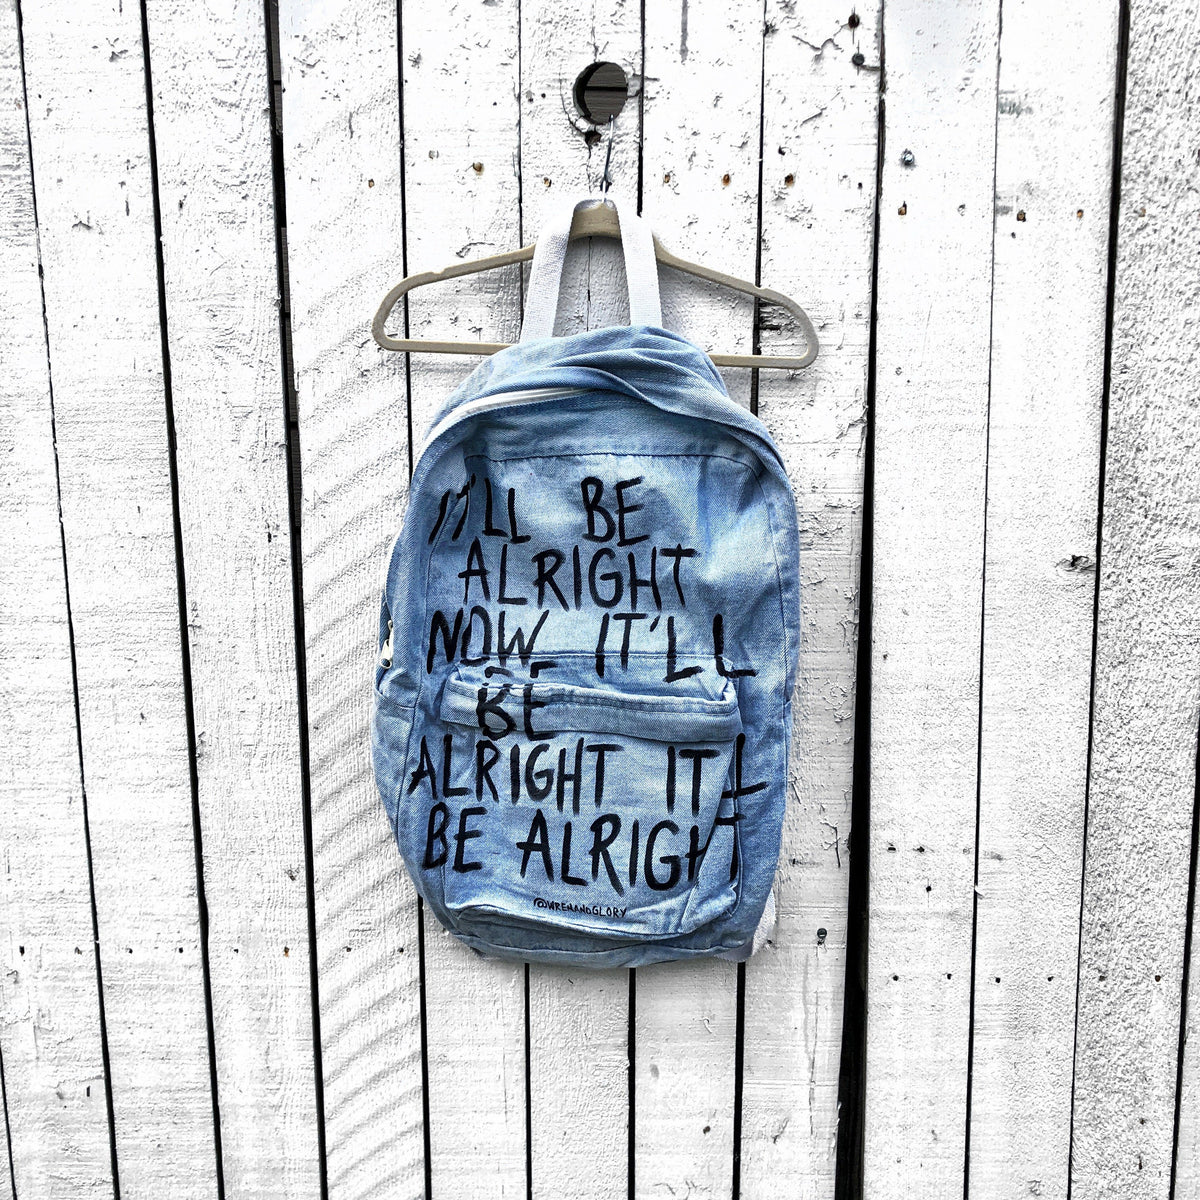 'ARIGHT ARIGHT' PAINTED BACKPACK